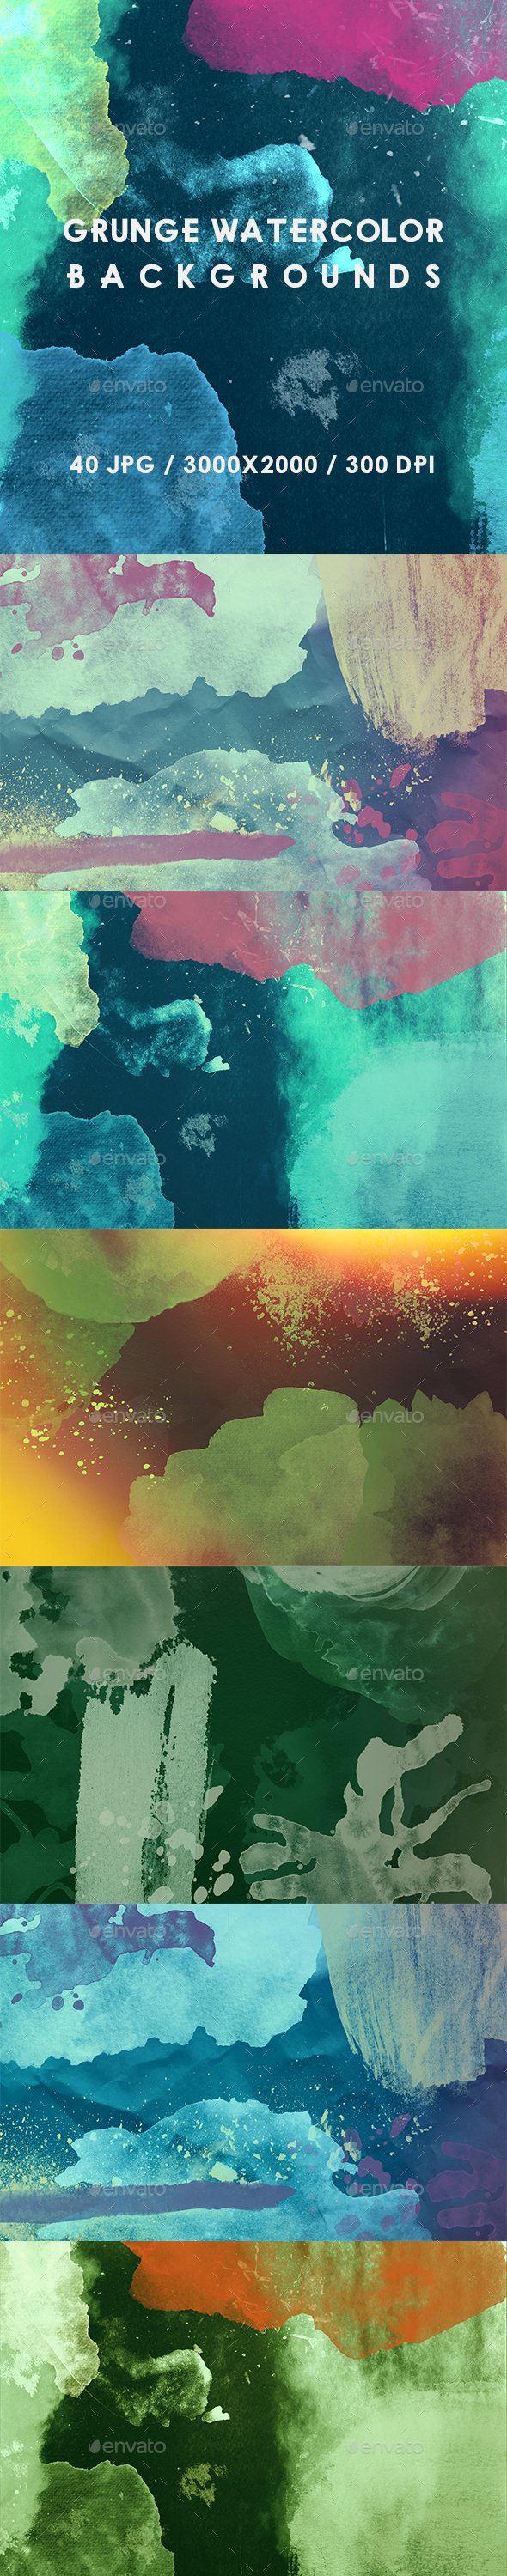 Grunge Watercolor Backgrounds - Abstract Backgrounds